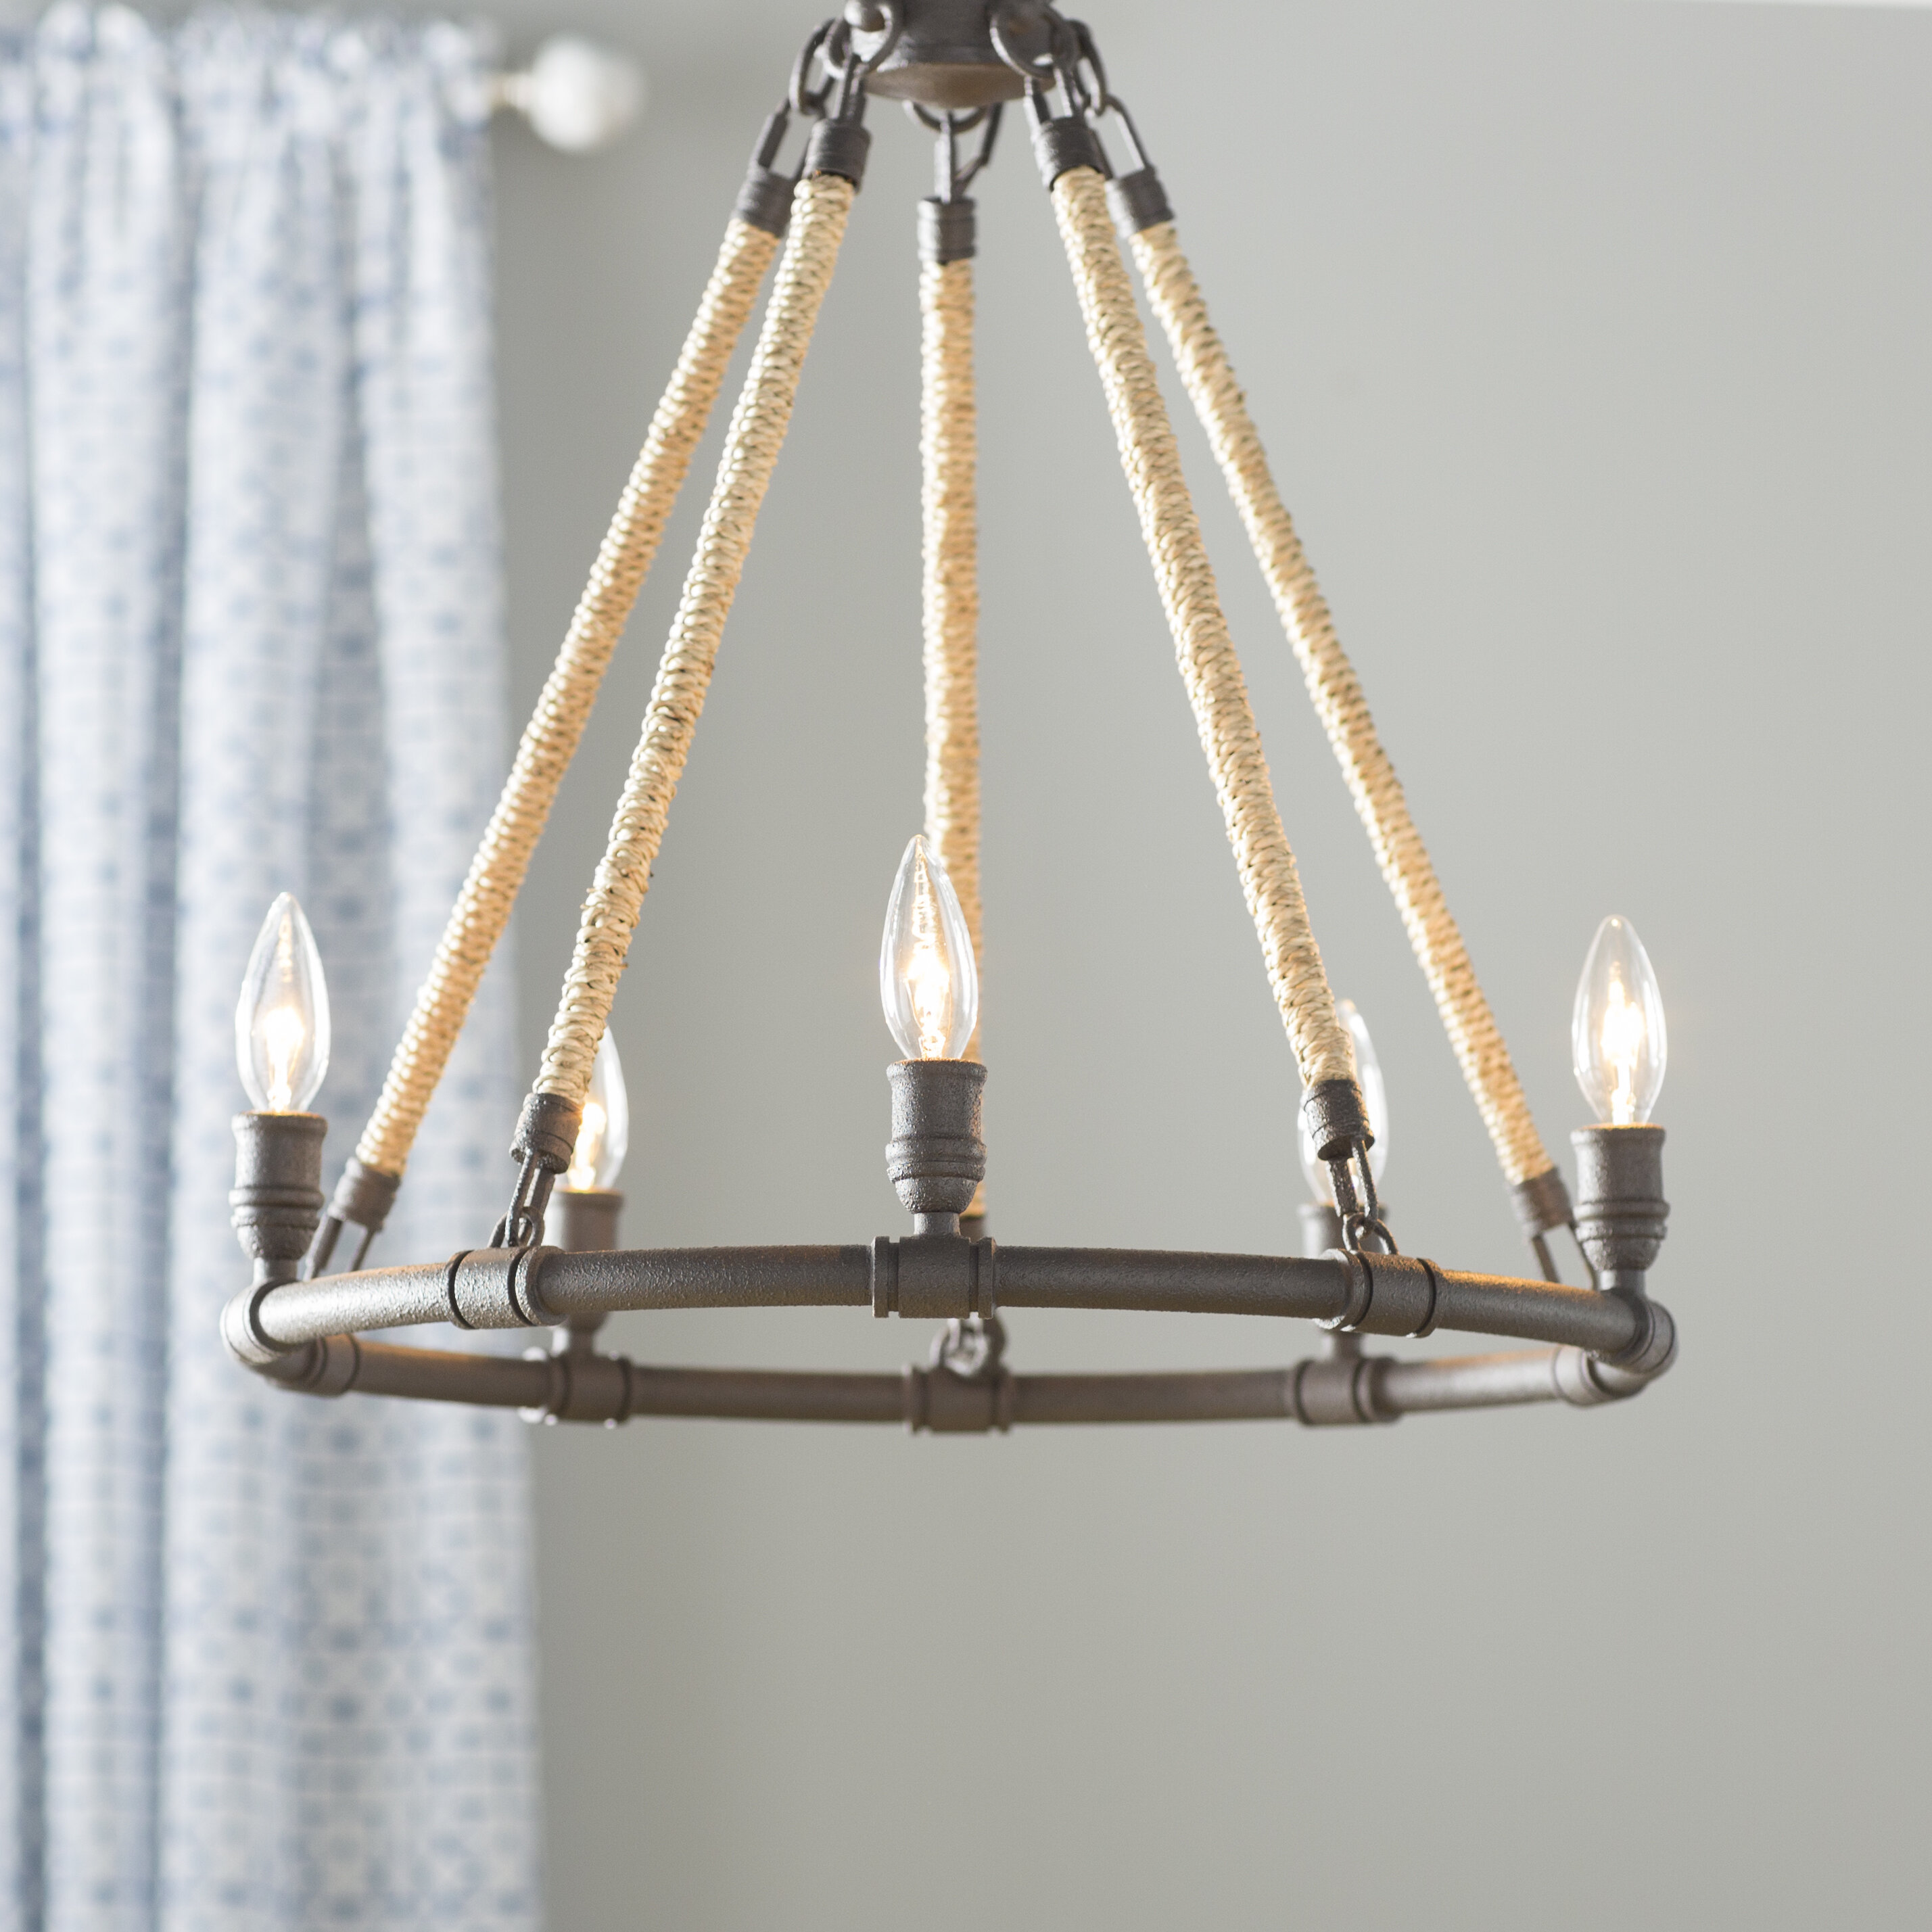 for rectangular full dining otbsiu contemporary cheap black old fashioned song of crystal crystals room songwriter chandeliers chandelier size archived diningm lighting